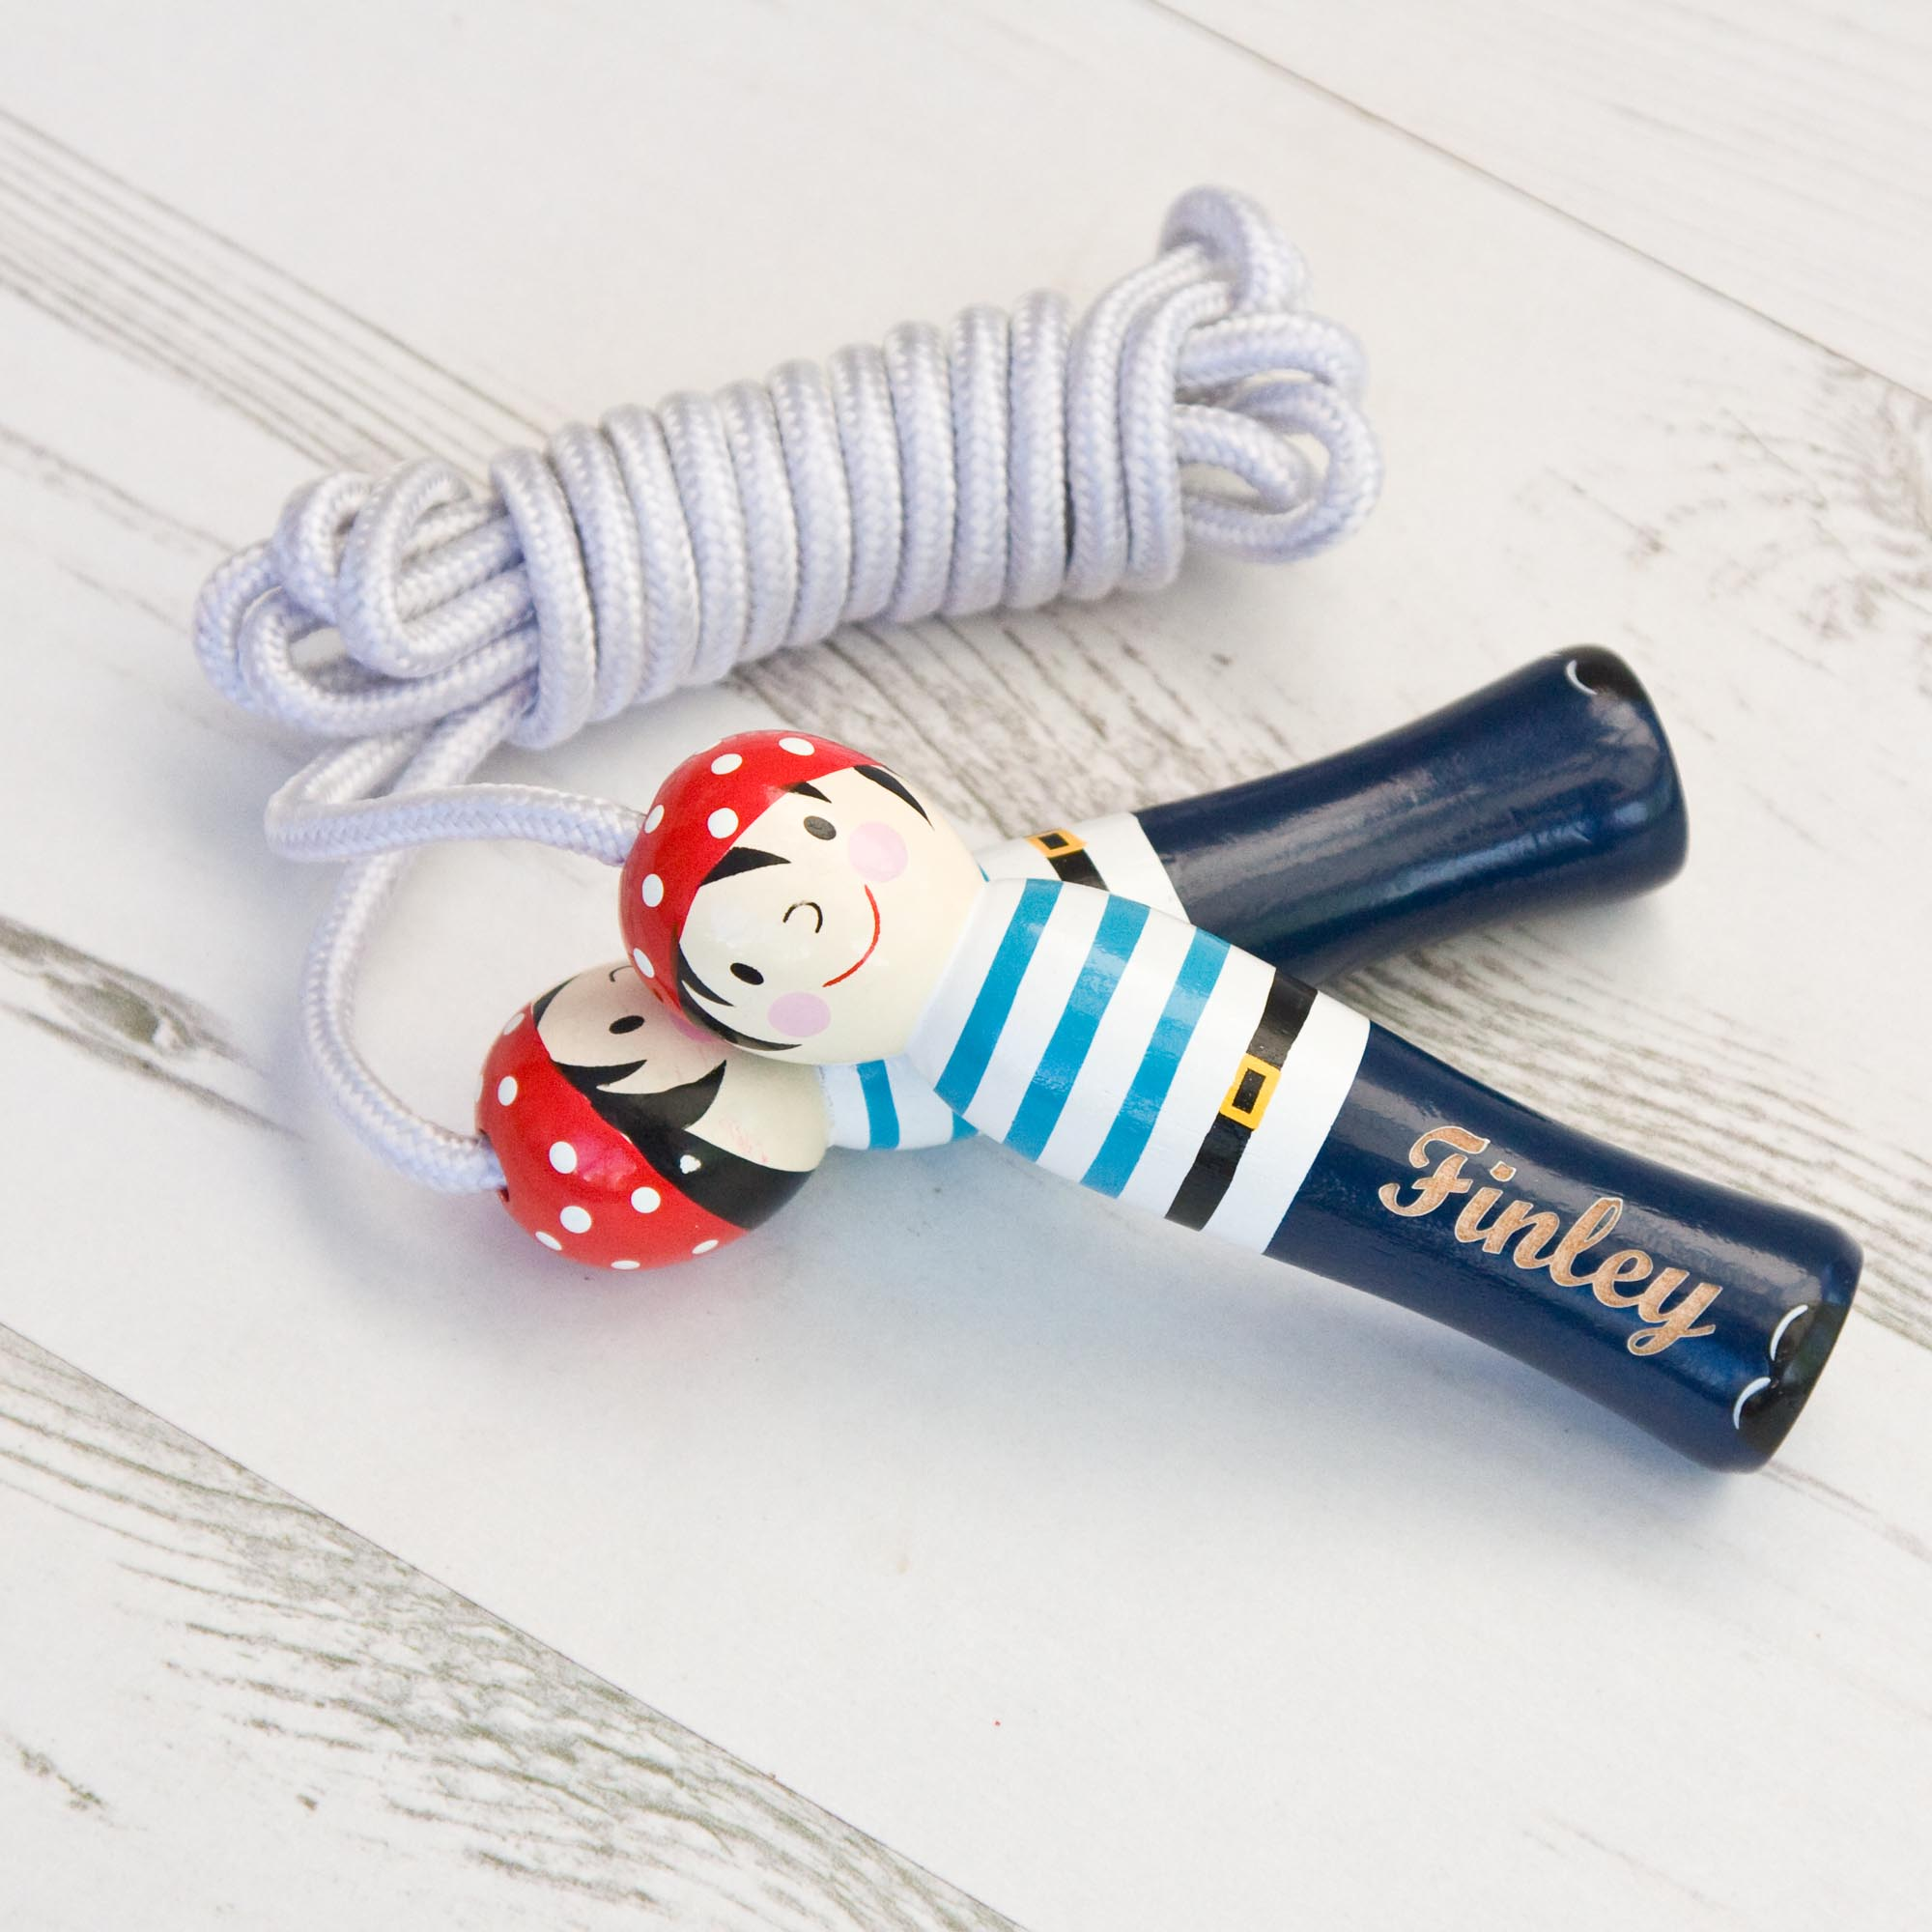 pirate-skipping-rope-personalised-toy-20460-p.jpg